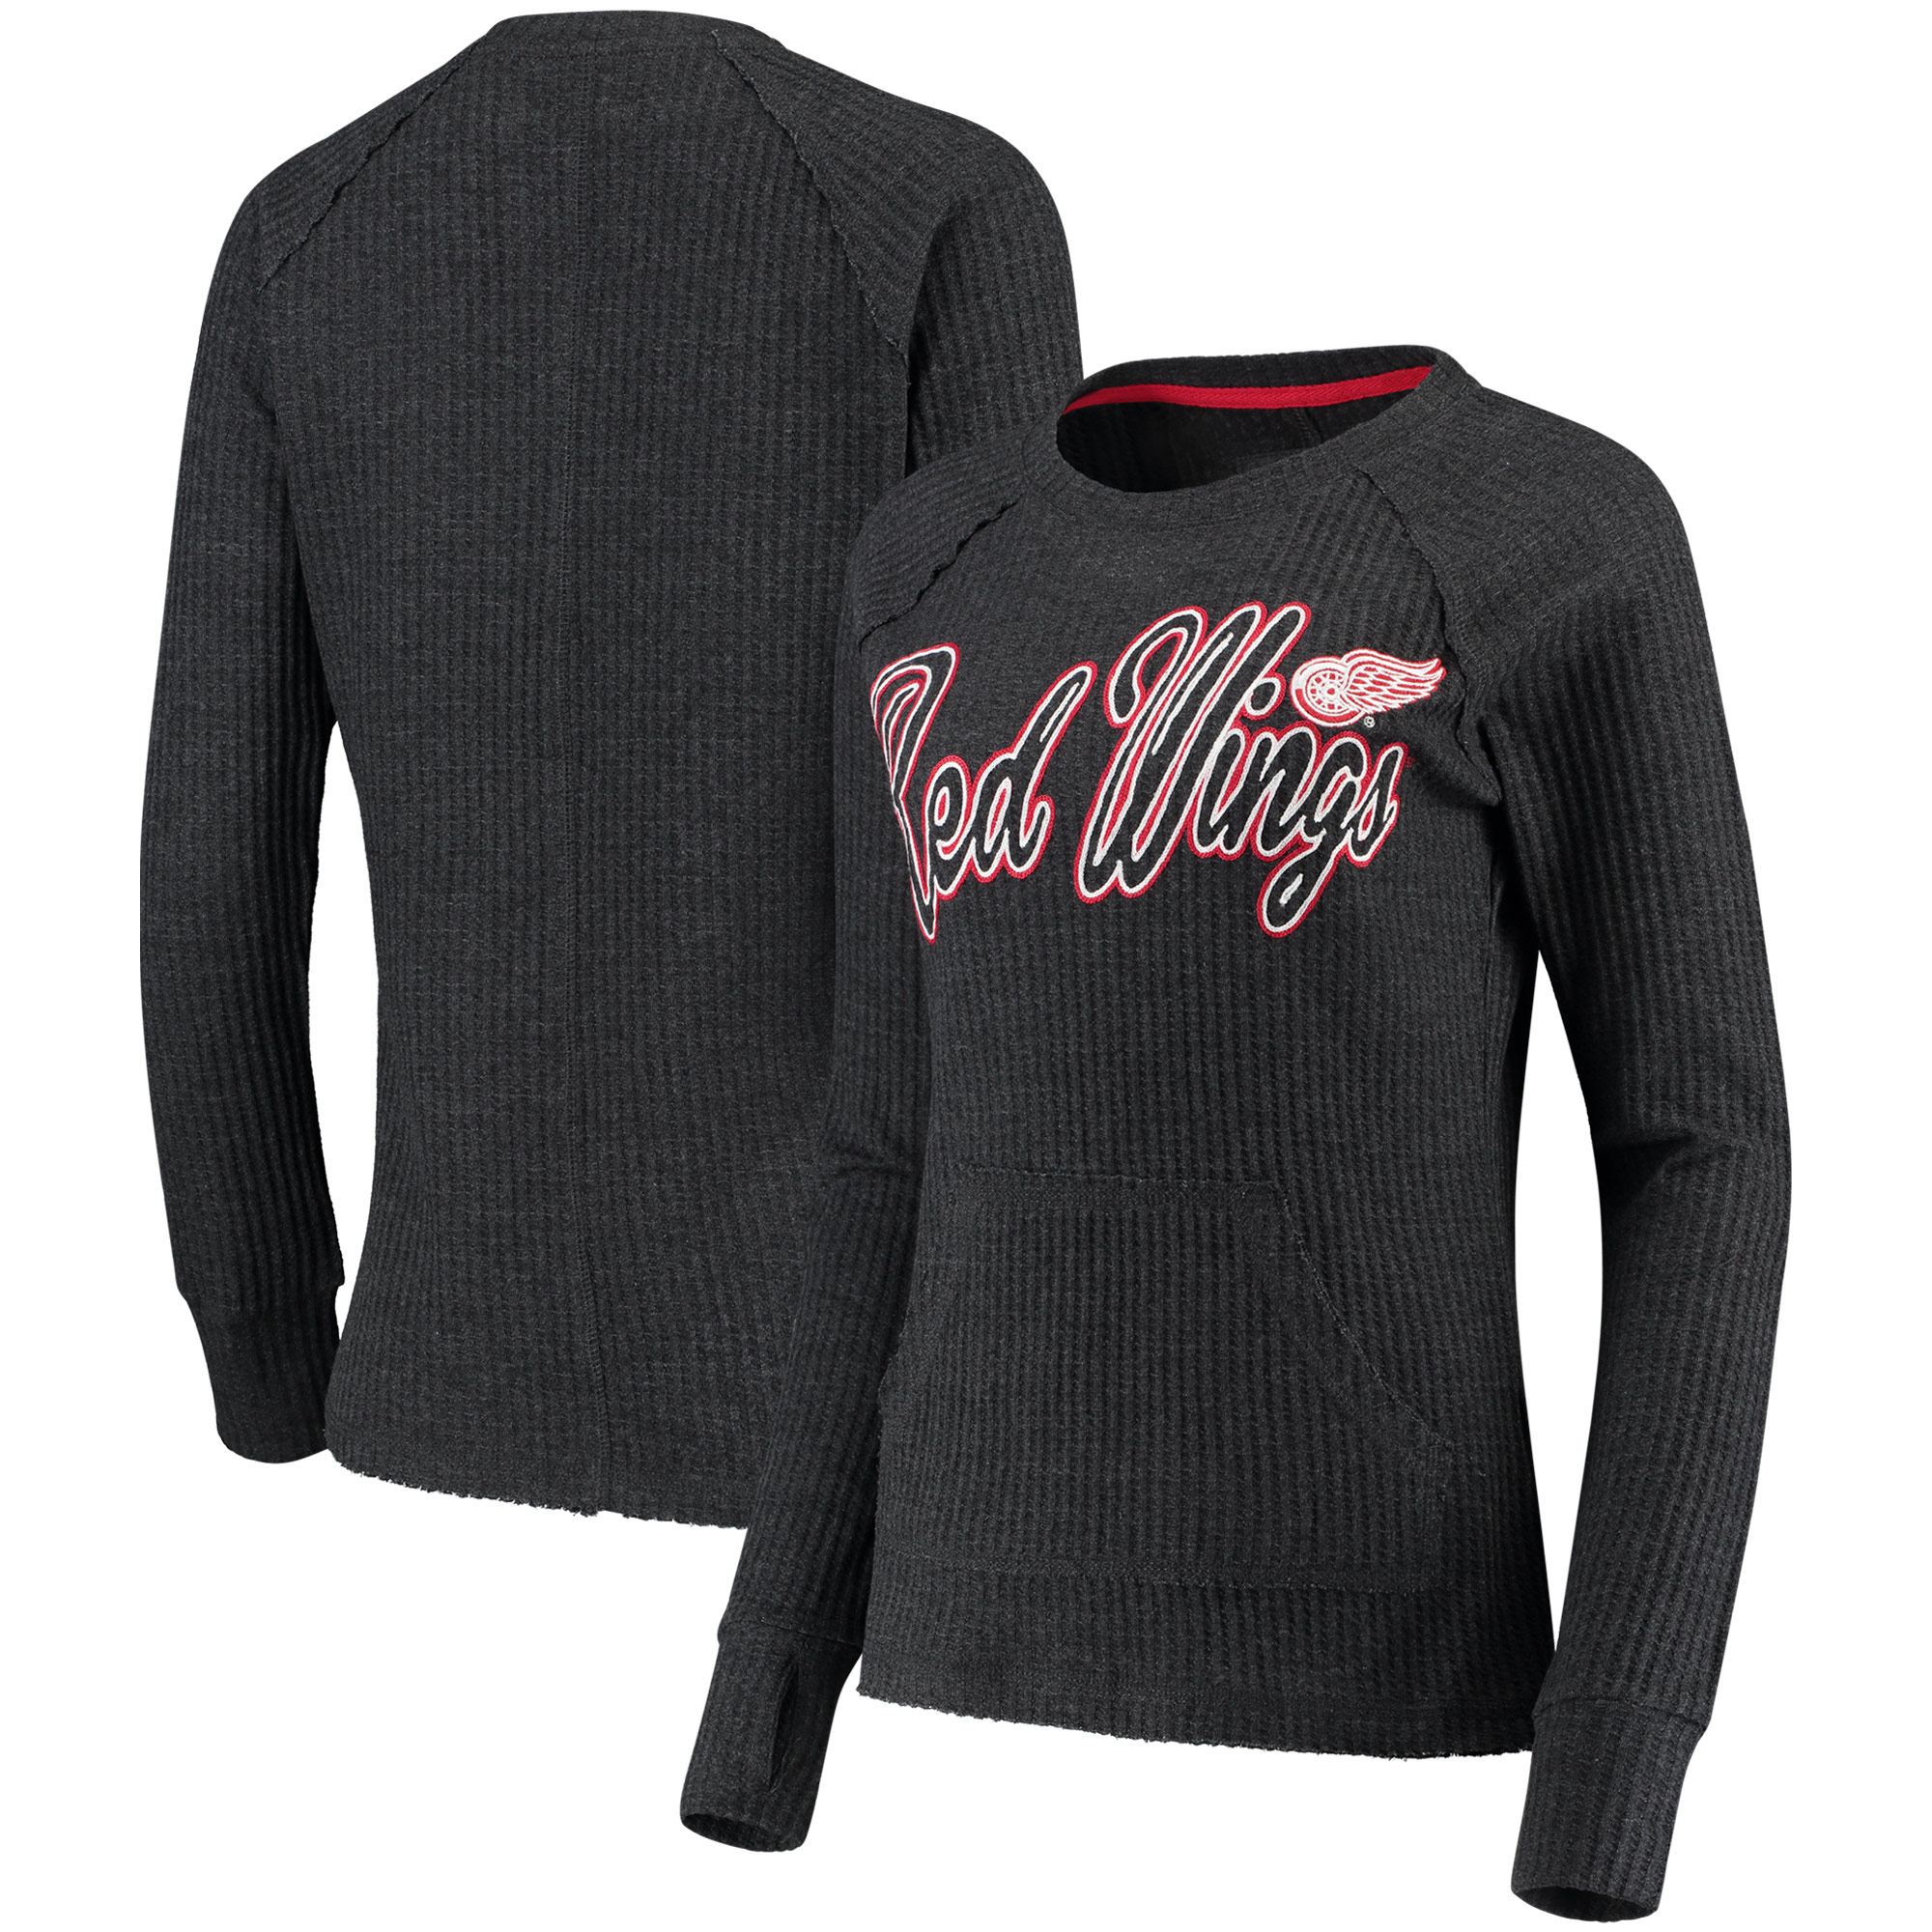 Detroit Red Wings G-III 4Her by Carl Banks Women's Off Season Pullover Crew Neck Sweatshirt - Charcoal